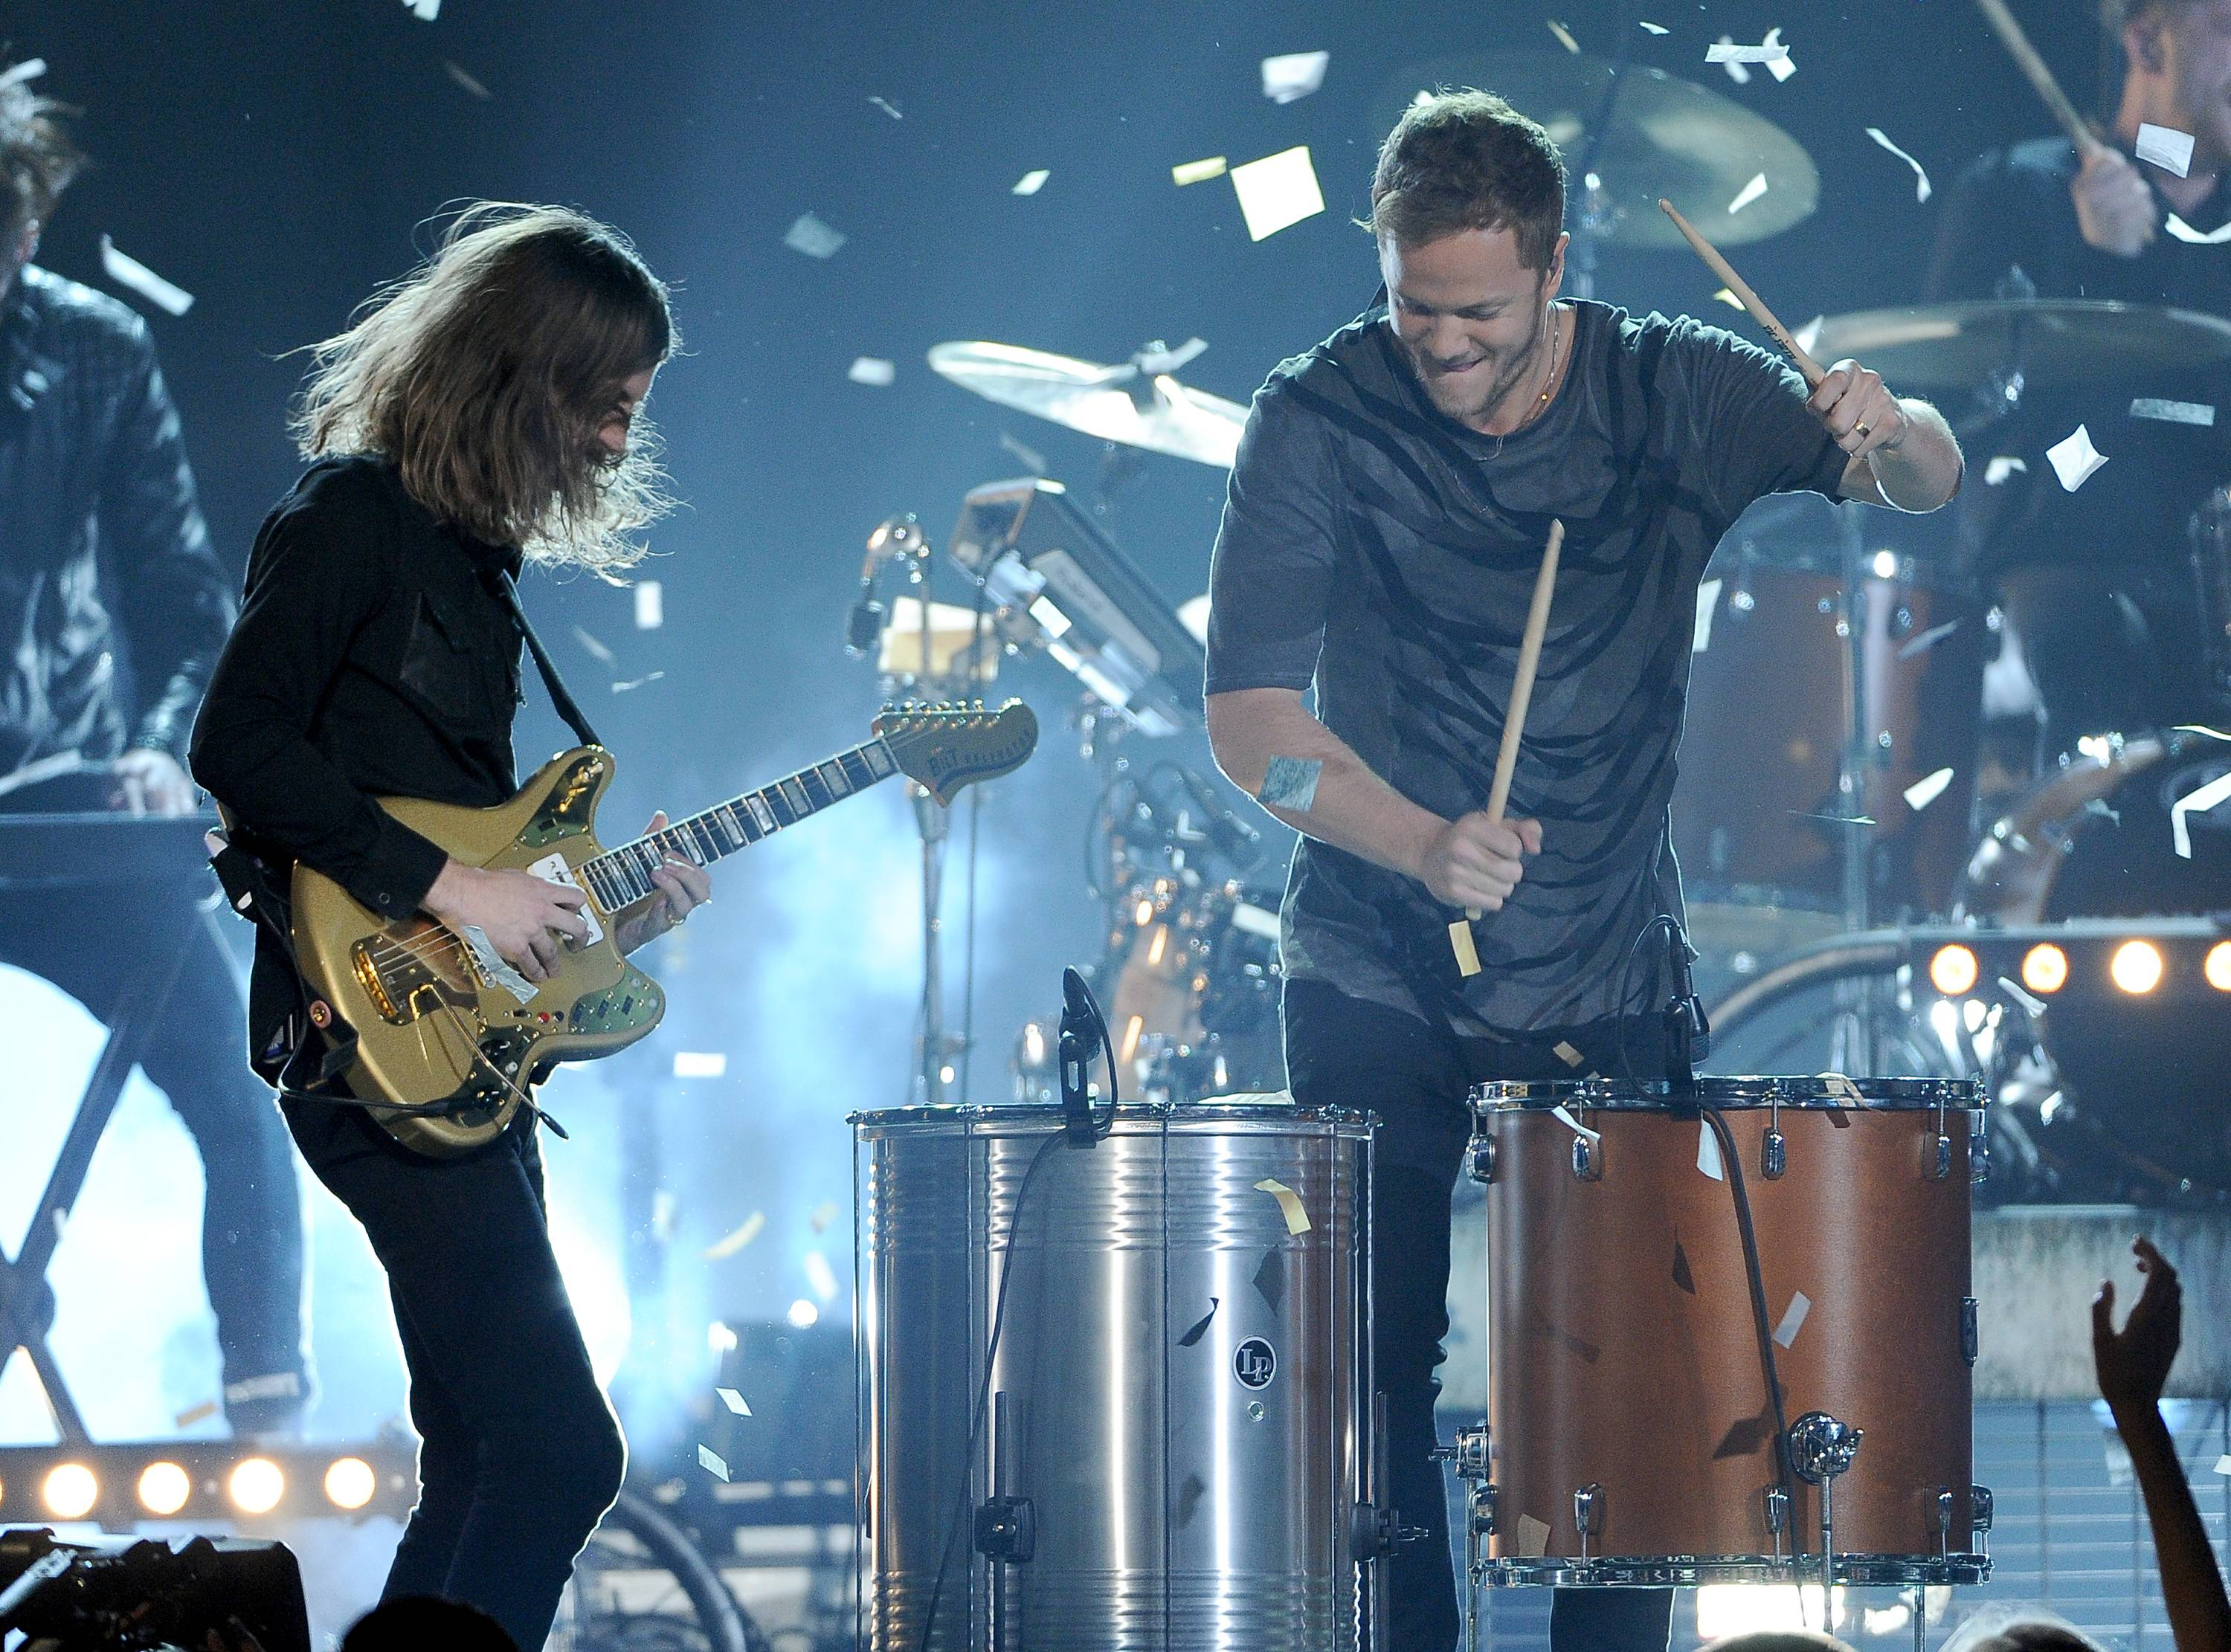 Wayne Sermon, left, and Dan Reynolds, of the musical group Imagine Dragons, perform at the Billboard Music Awards at the MGM Grand Garden Arena on Sunday, May 18, 2014, in Las Vegas.